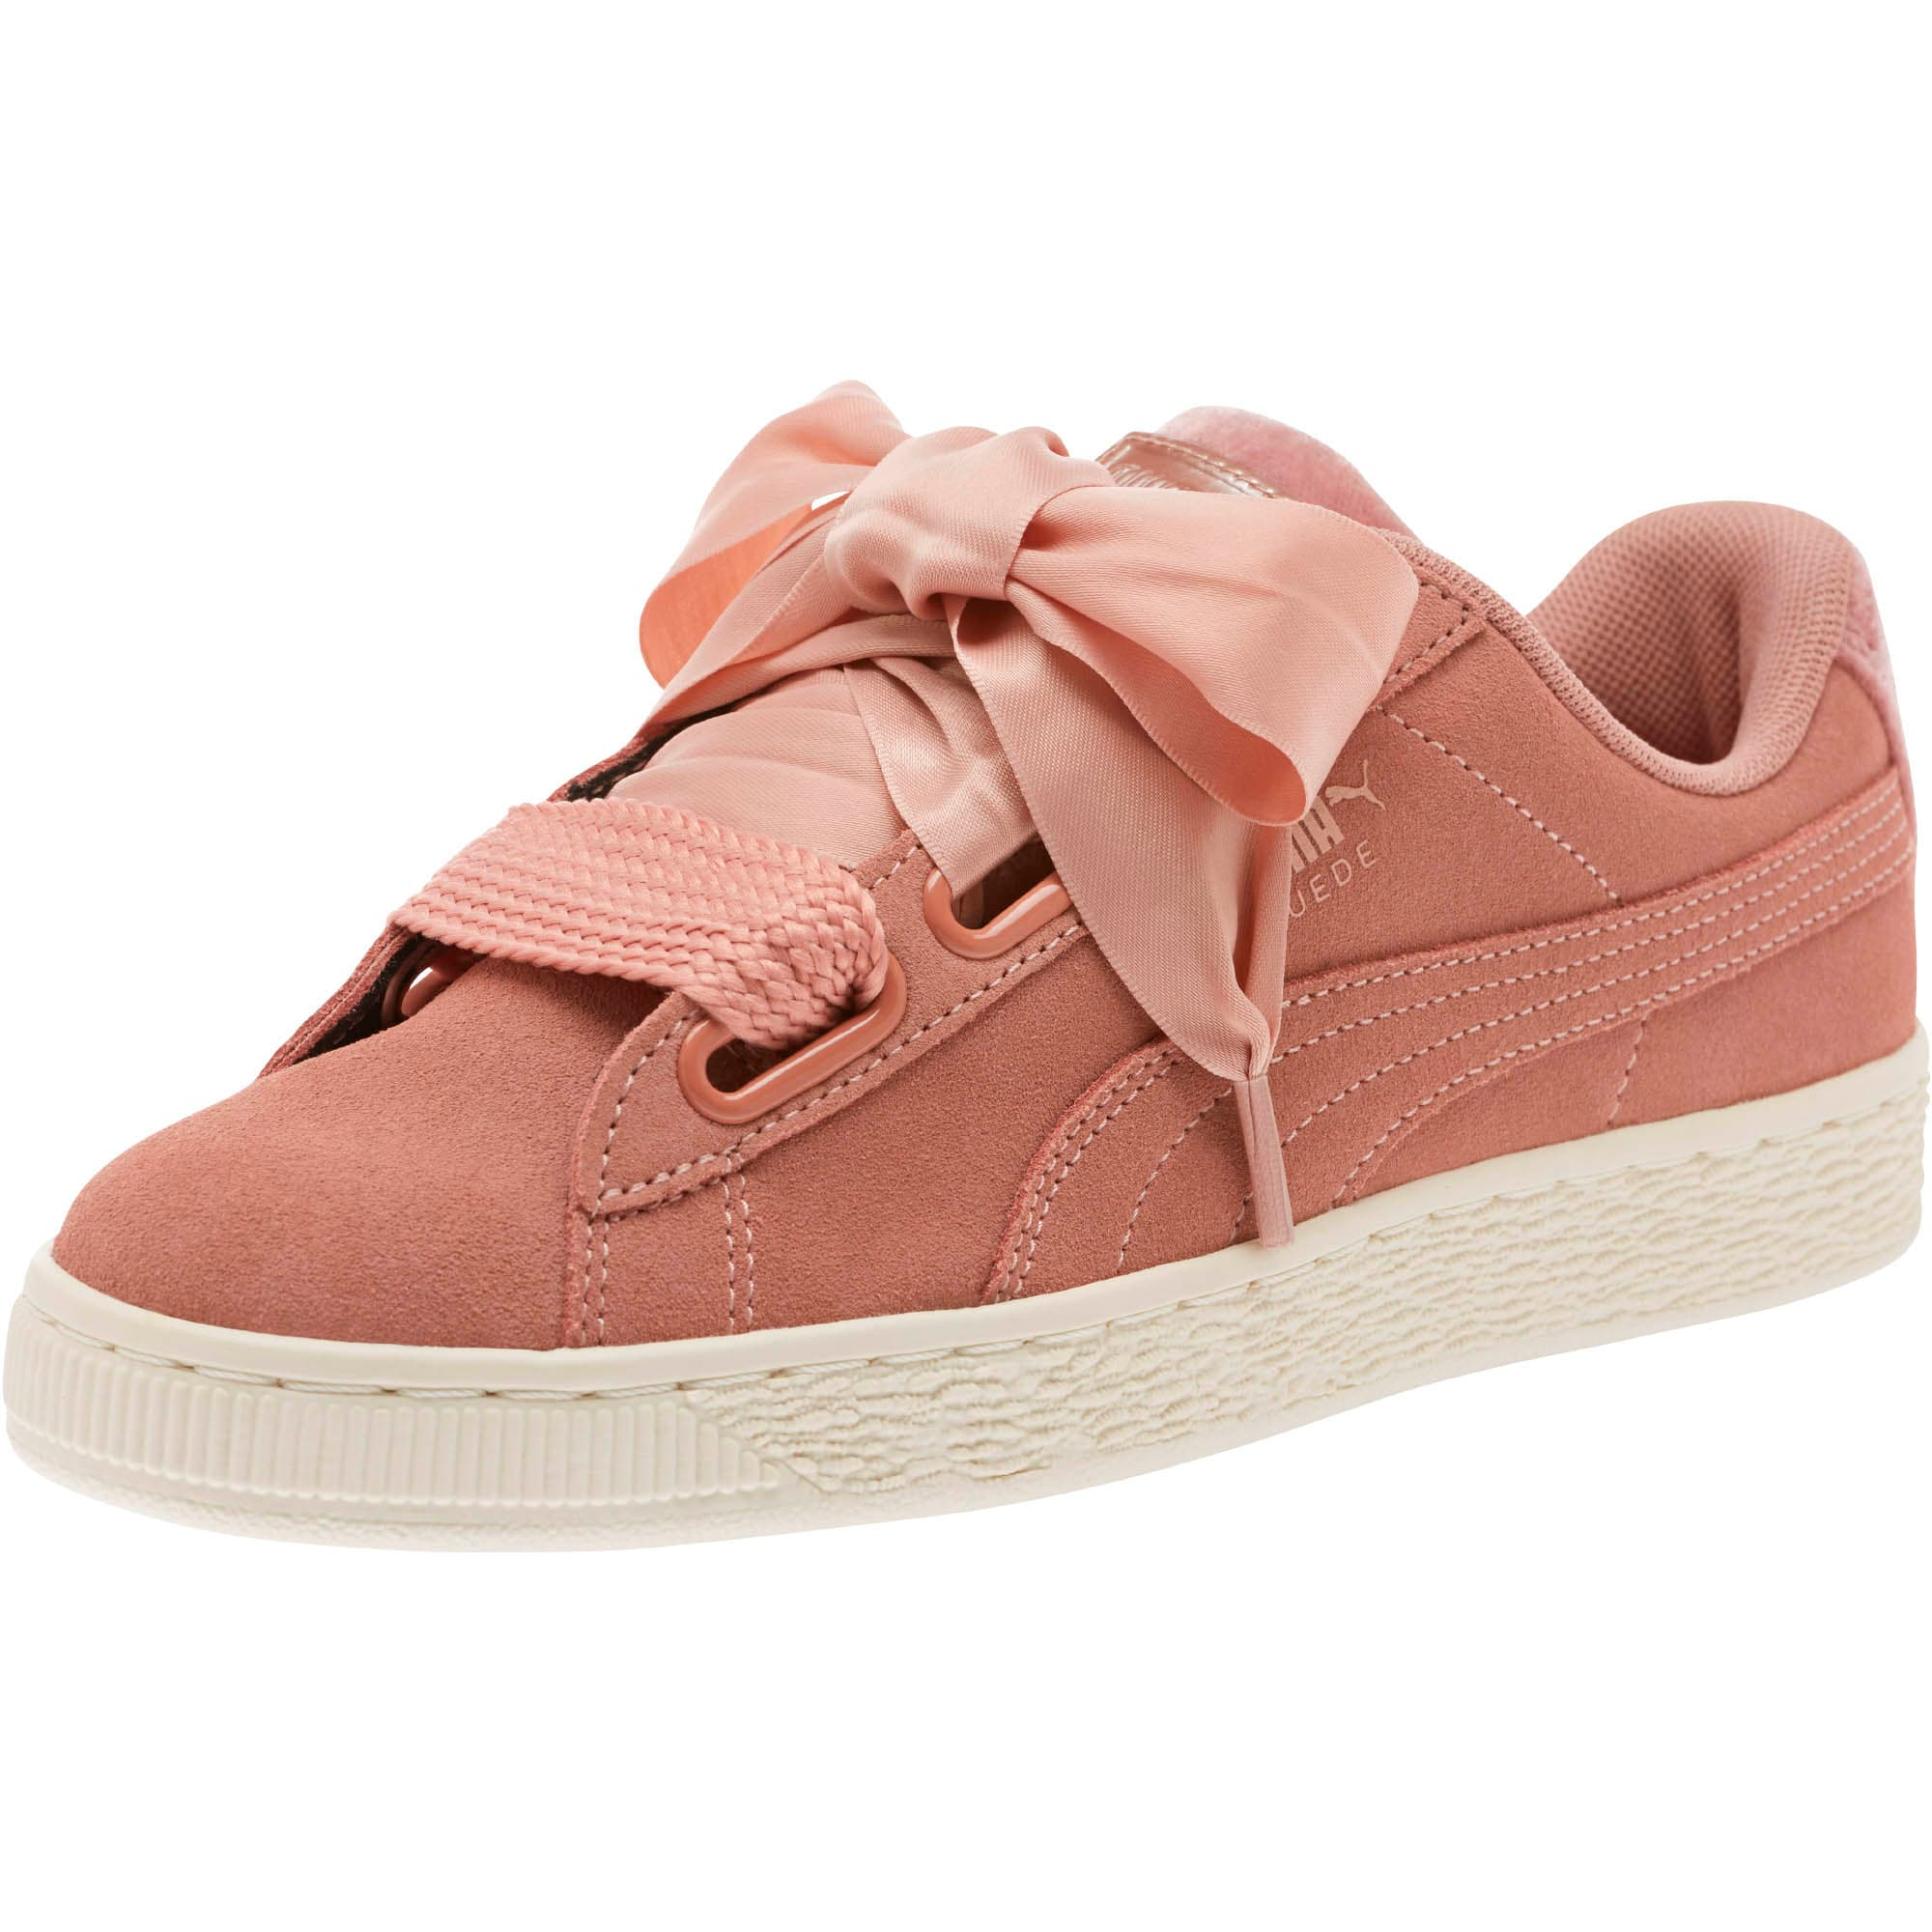 free shipping 3f642 bf7fe Suede Heart VR Women's Sneakers